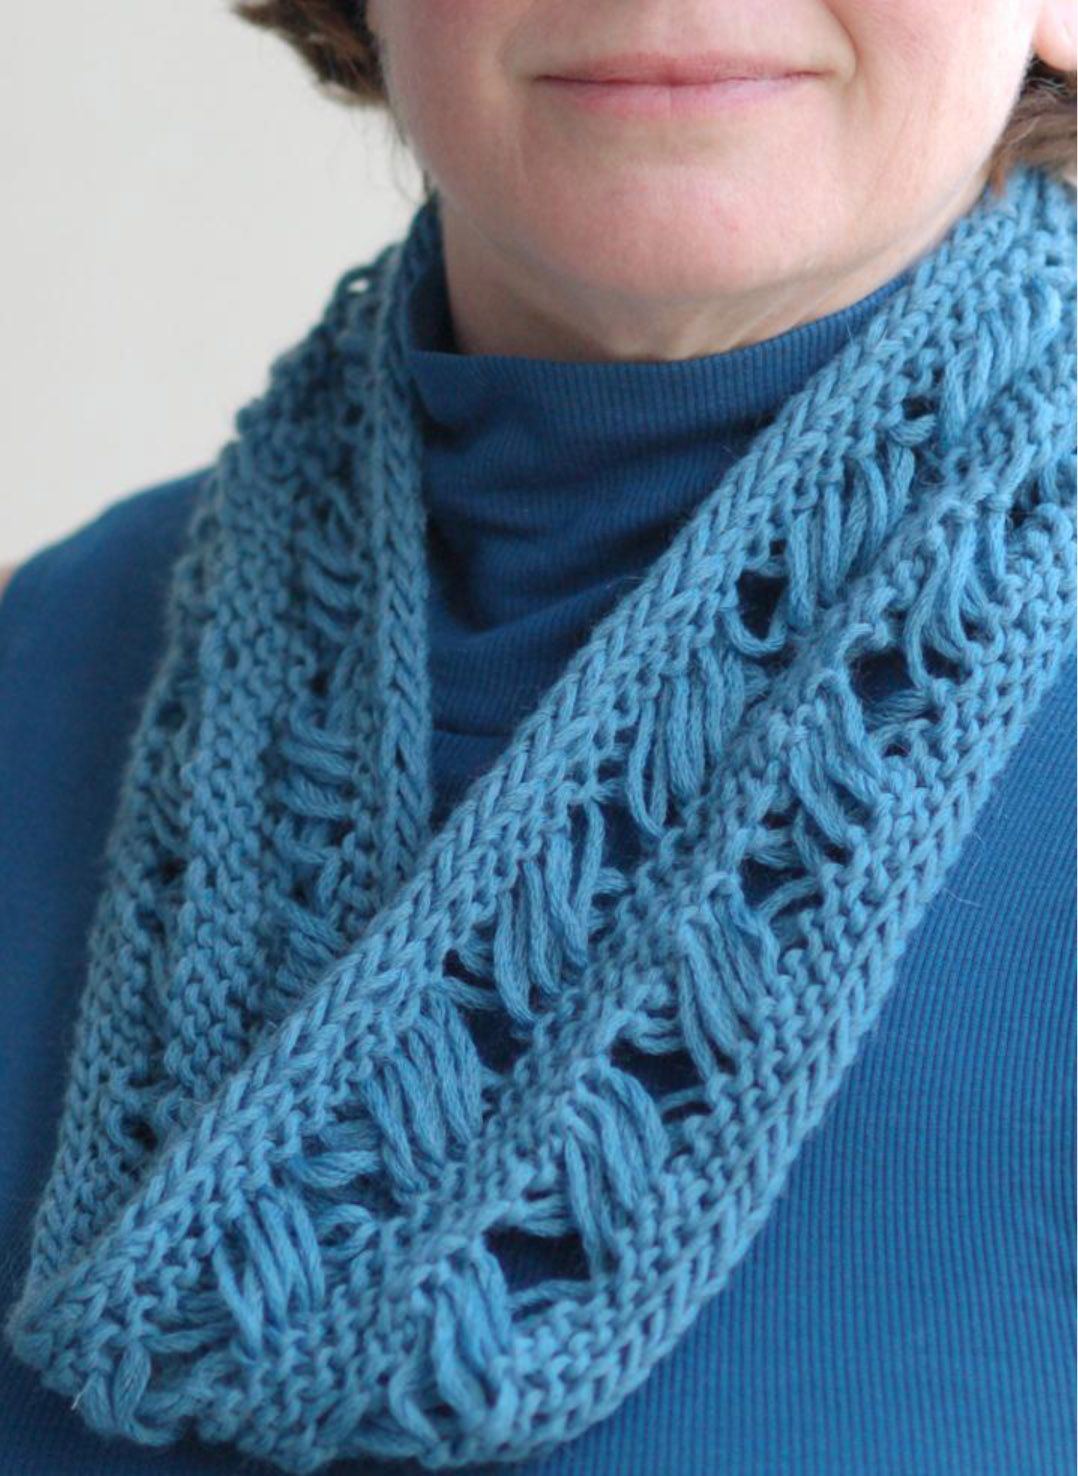 Accordion mobius cowl knitcowlsinfinity pinterest knit cowl accordion mobius cowl bankloansurffo Image collections